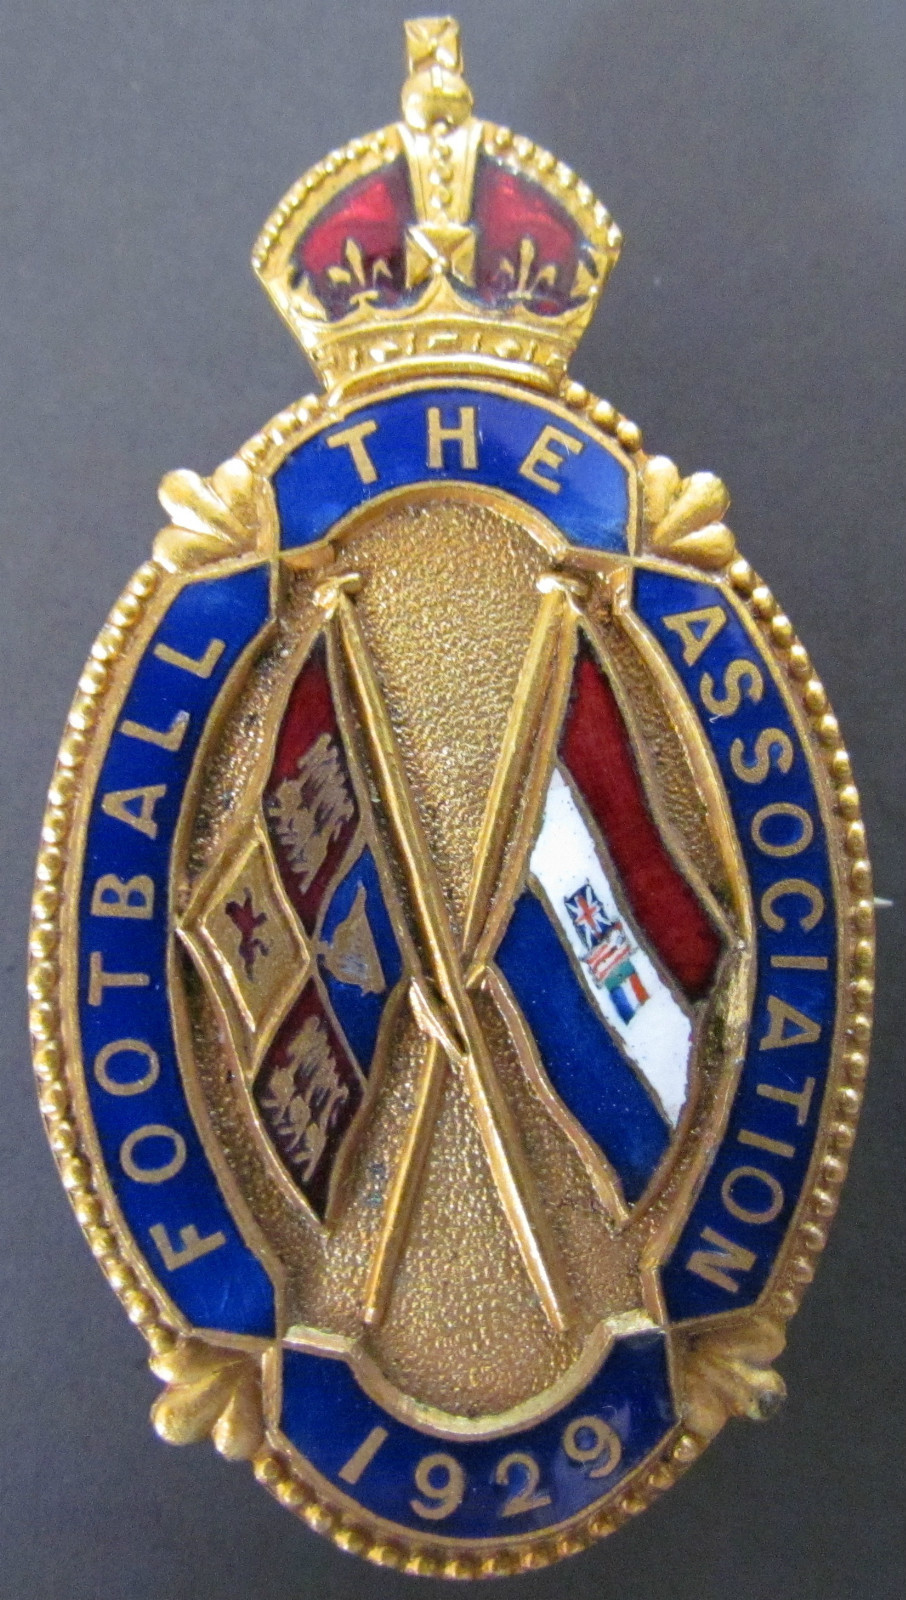 Rare Football Association Badge England South Africa